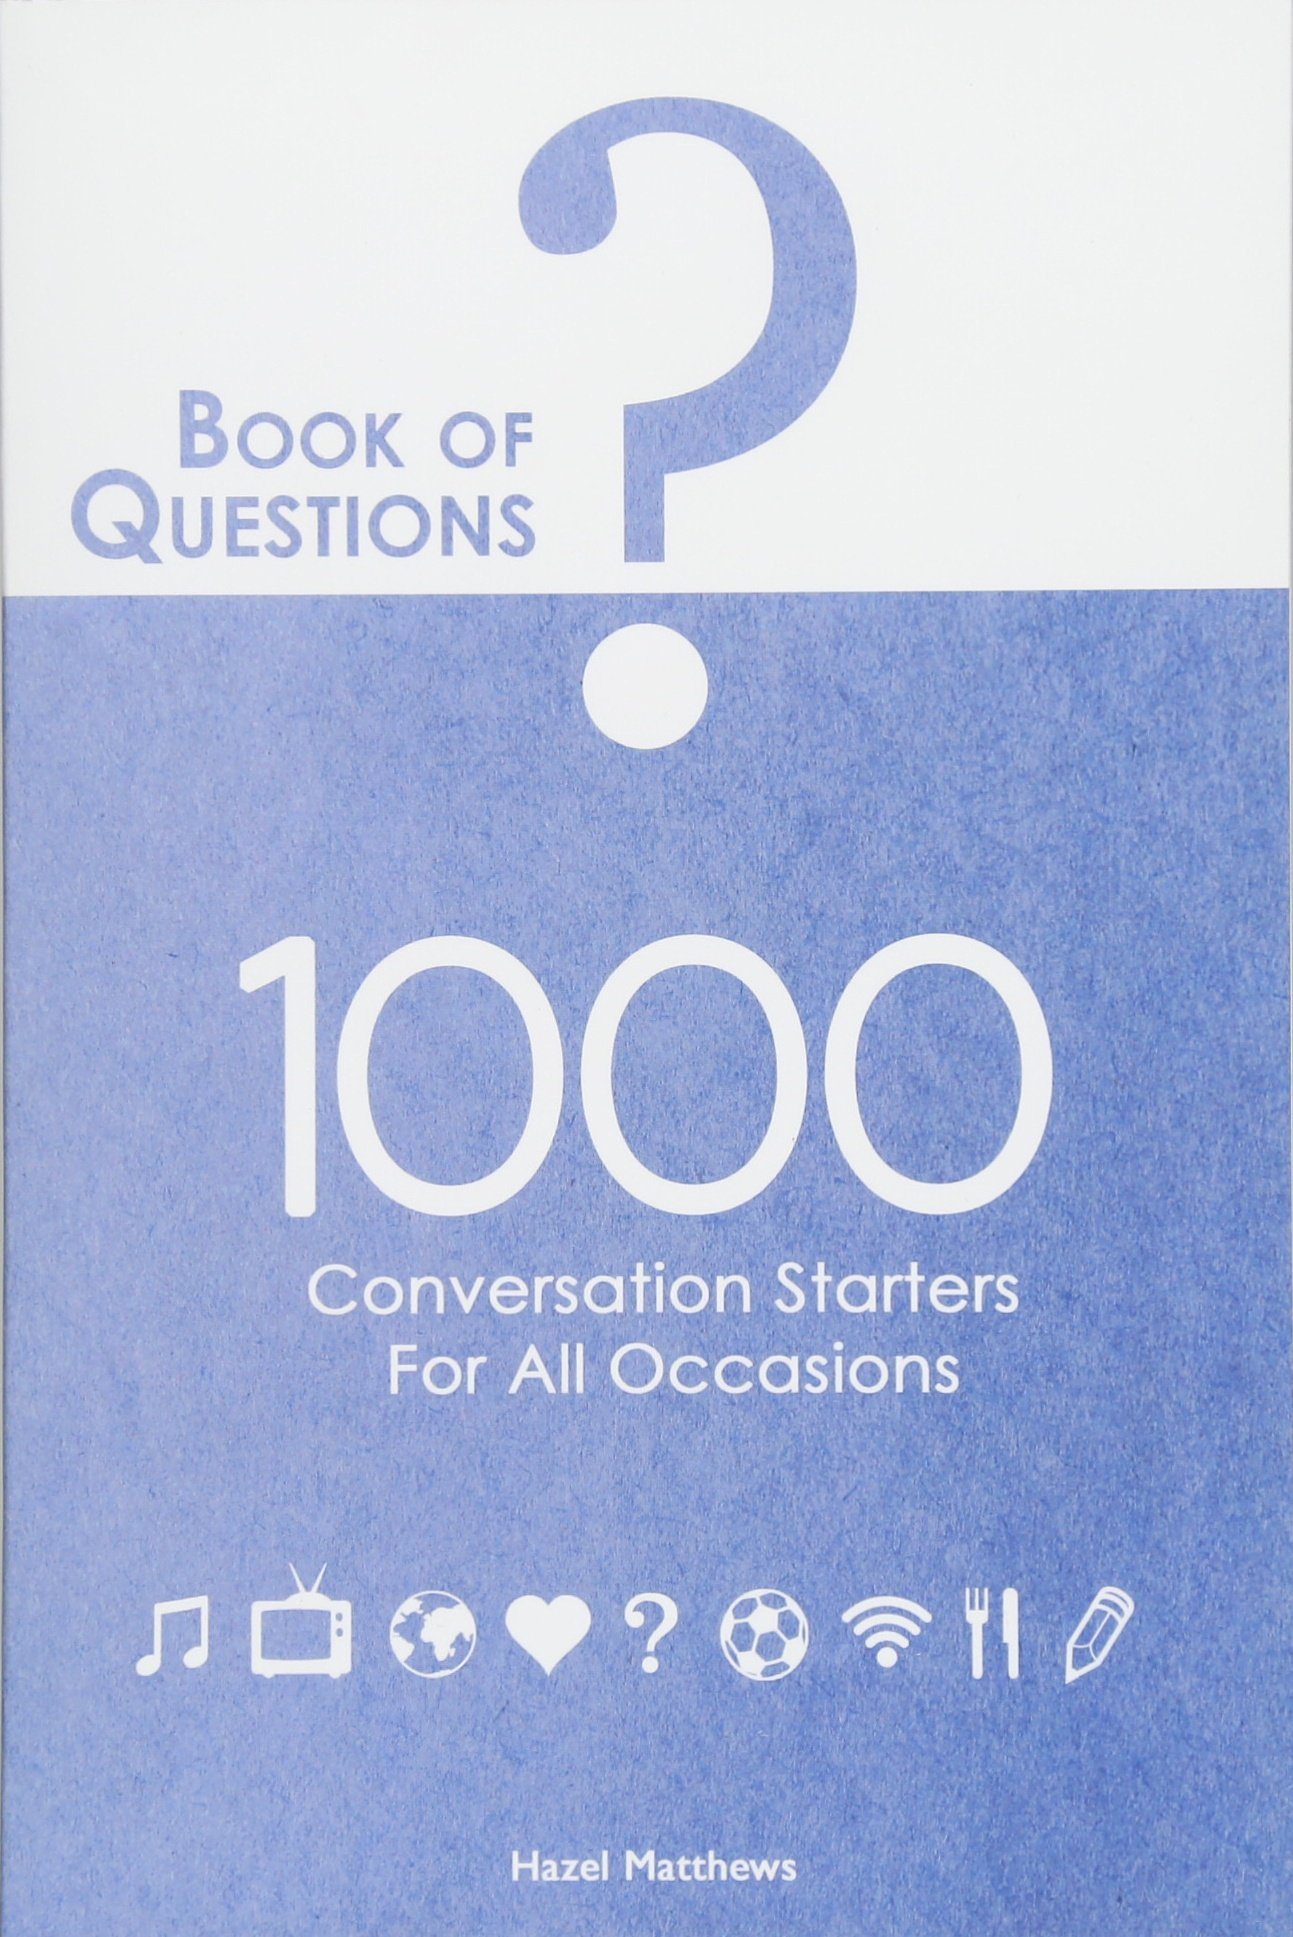 Book of Questions: 1000 Conversation Starters for All Occasions: Hazel  Matthews: 9781535567619: Amazon.com: Books